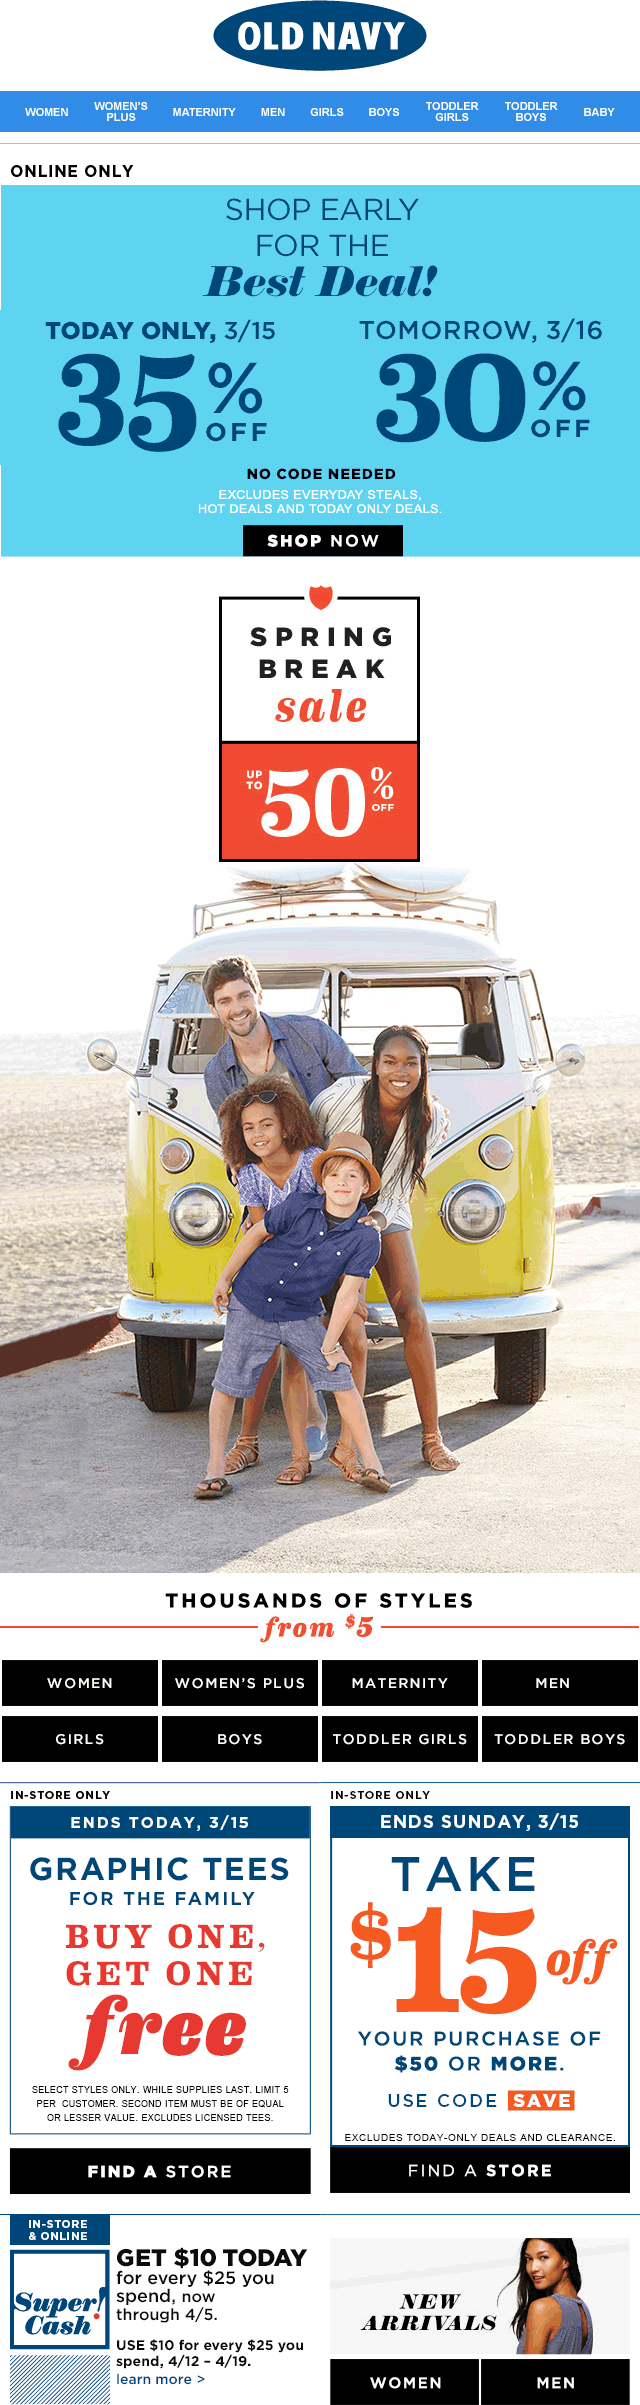 Old Navy Coupon November 2018 $15 off $50 & more at Old Navy, or 30-35% off online